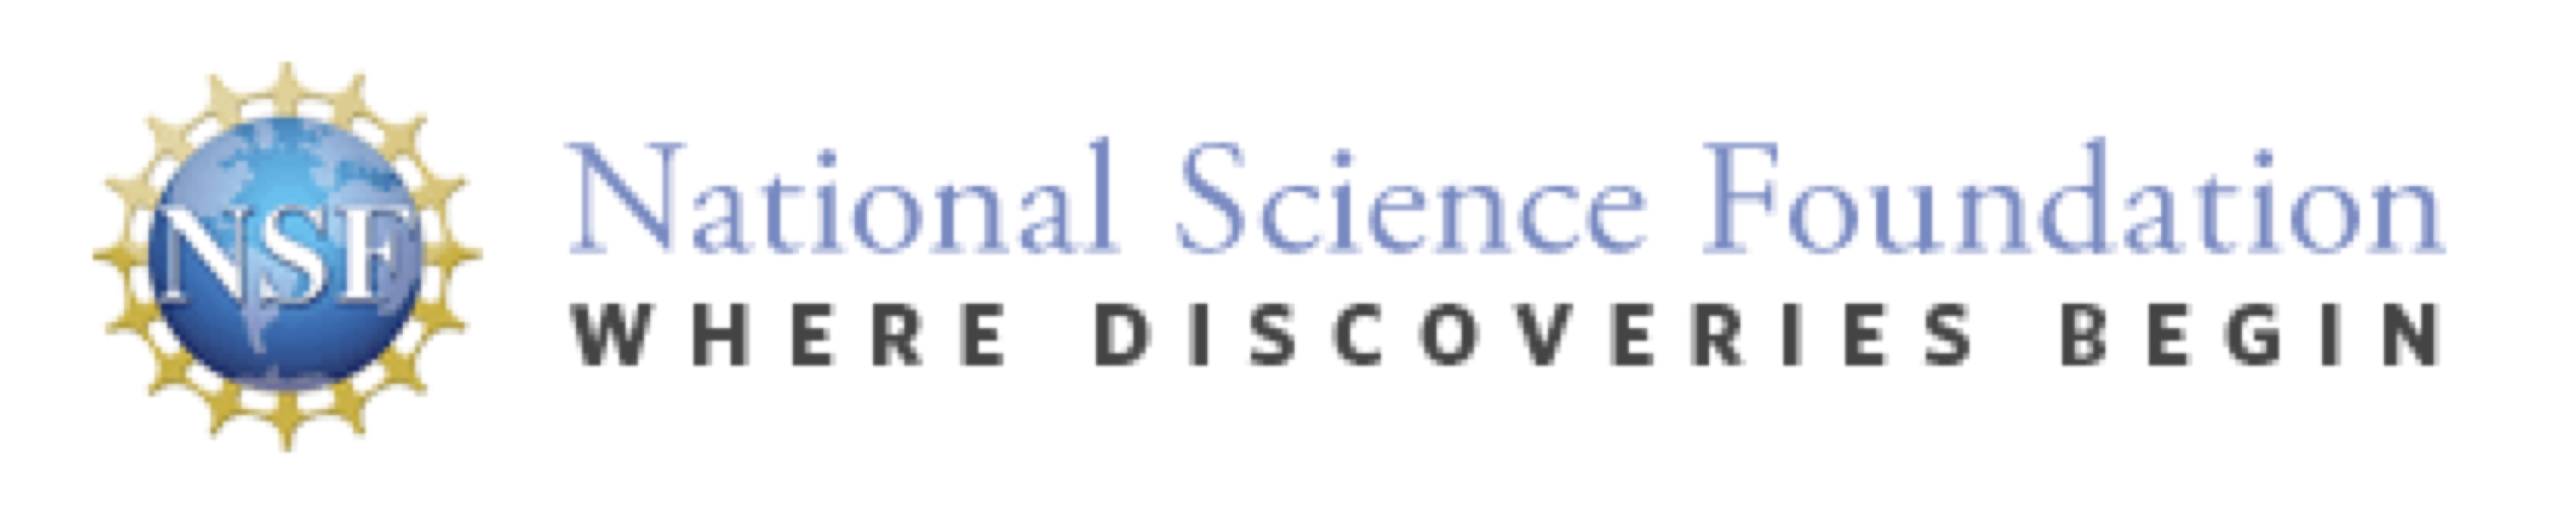 Nsf doctoral dissertation improvement grant